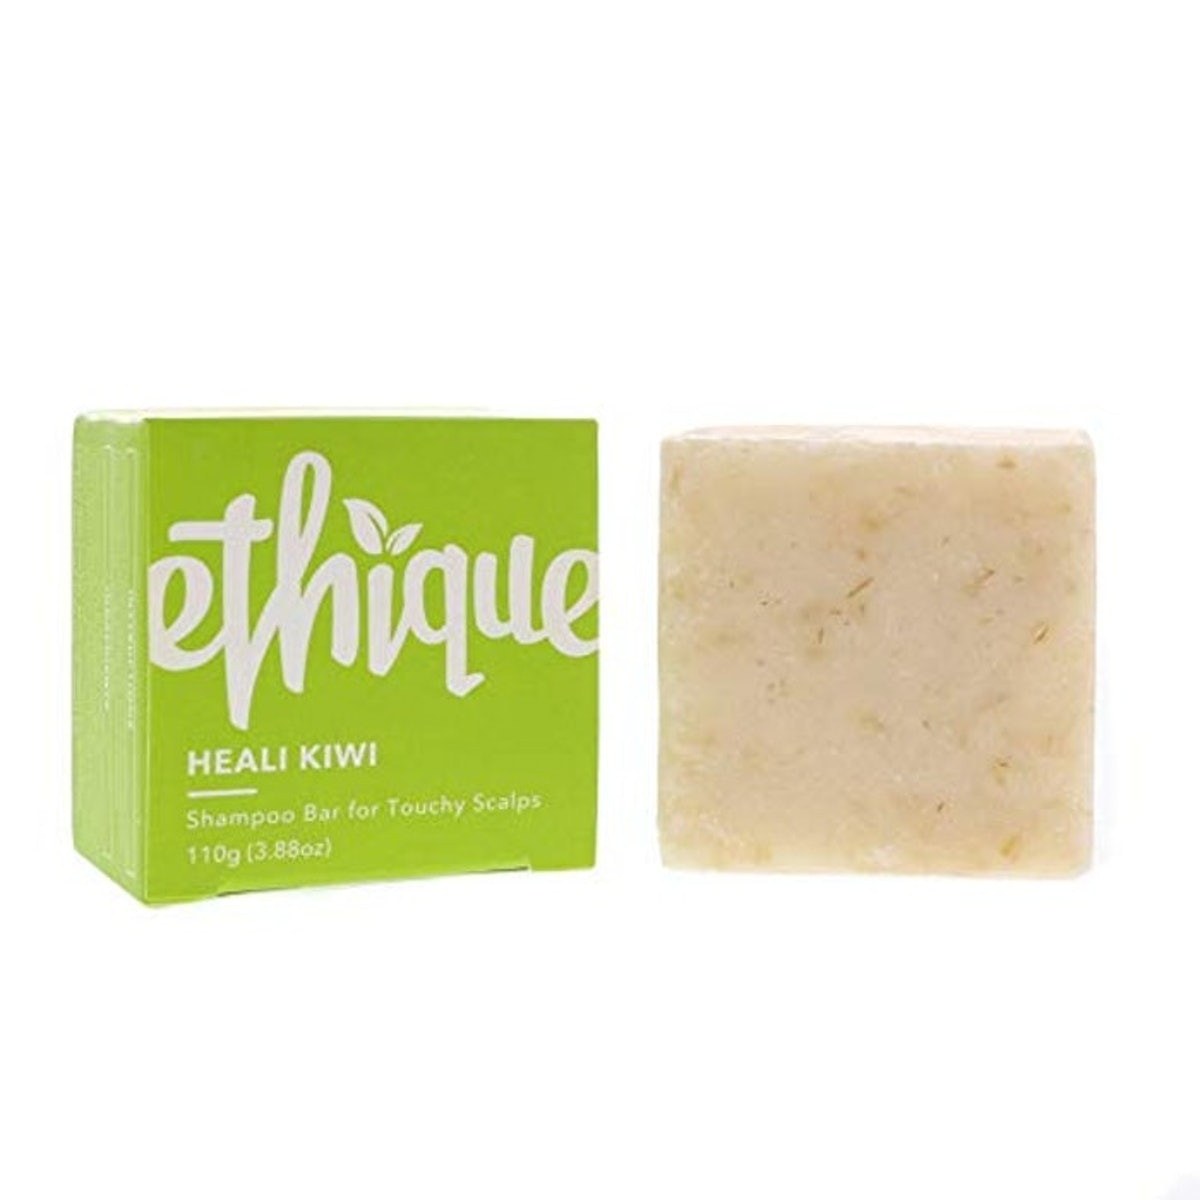 Ethique Eco-Friendly Solid Shampoo Bar for Touchy Scalps